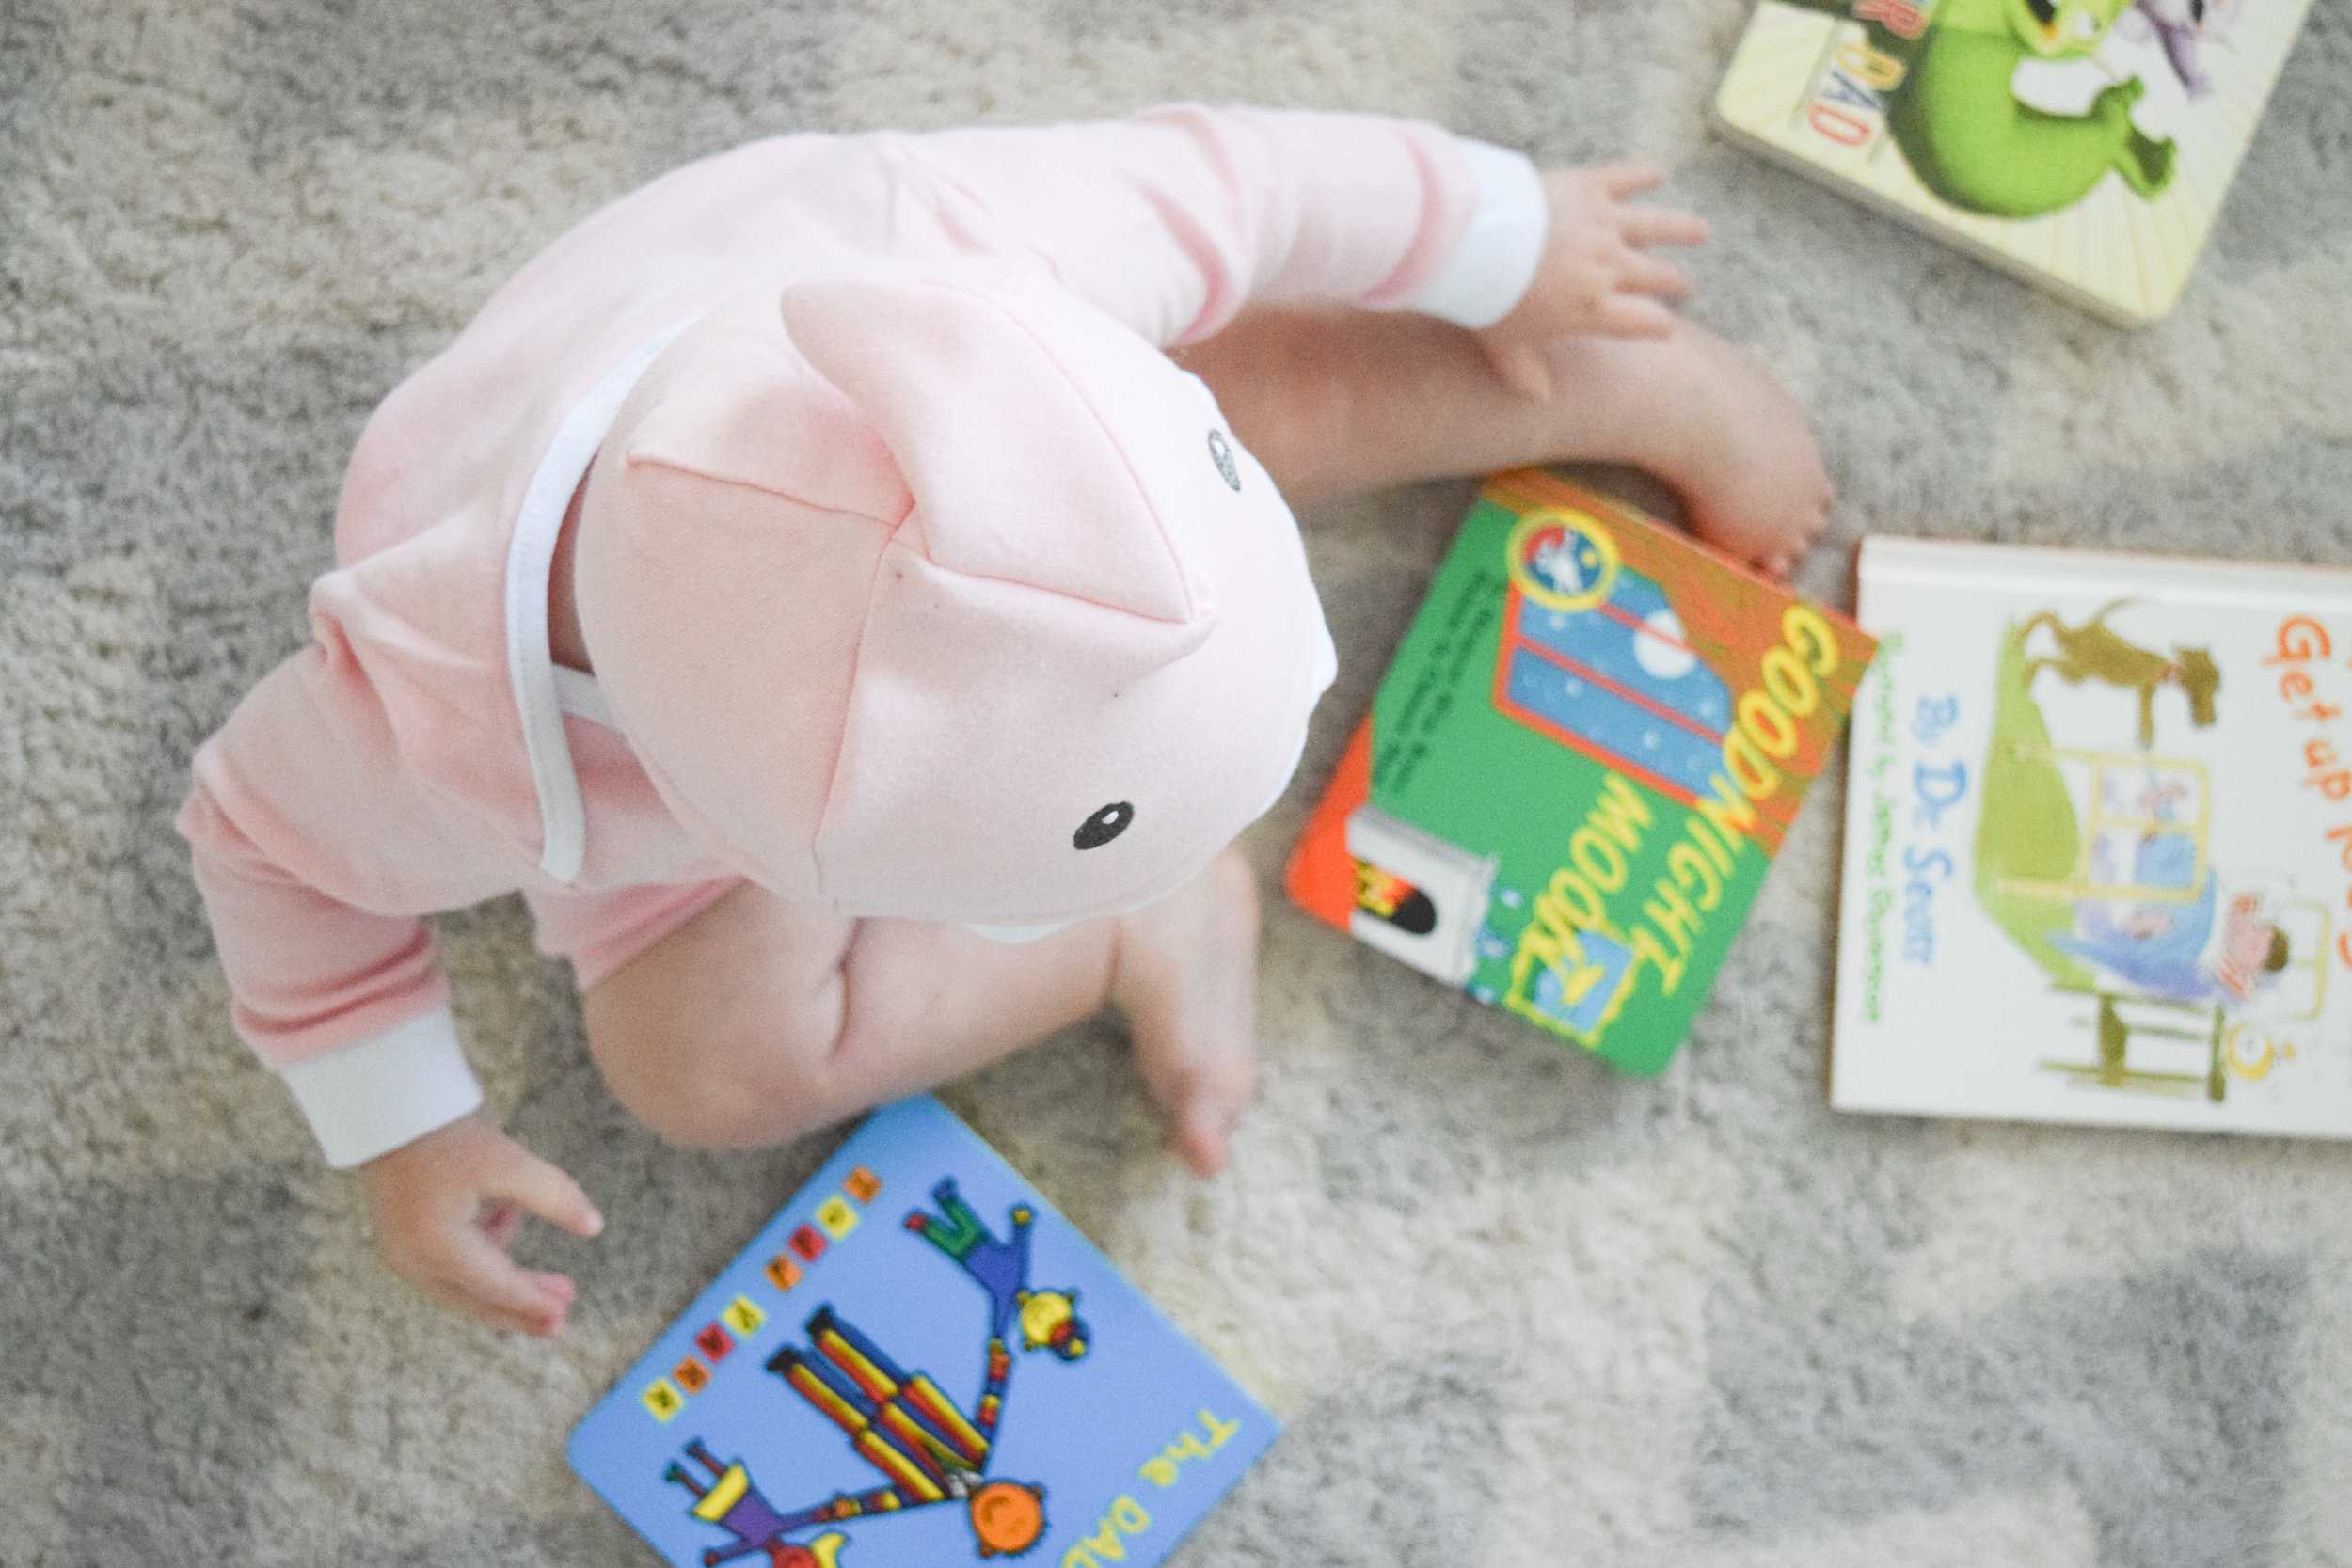 Baby Shower Gift Ideas - Baby Aspen - Baby Shark Outfit